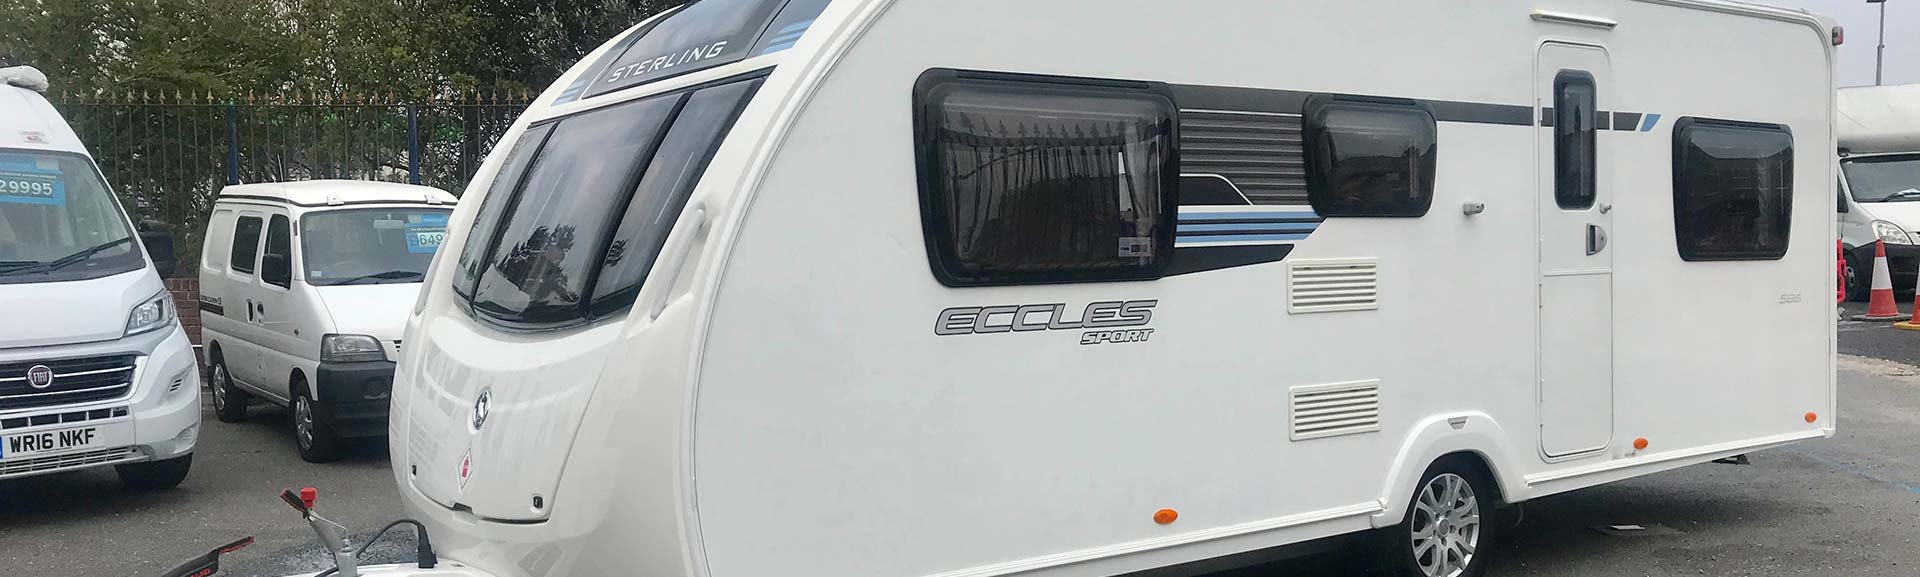 Providing top quality caravans, motorhomes and accessories to customers across the UK